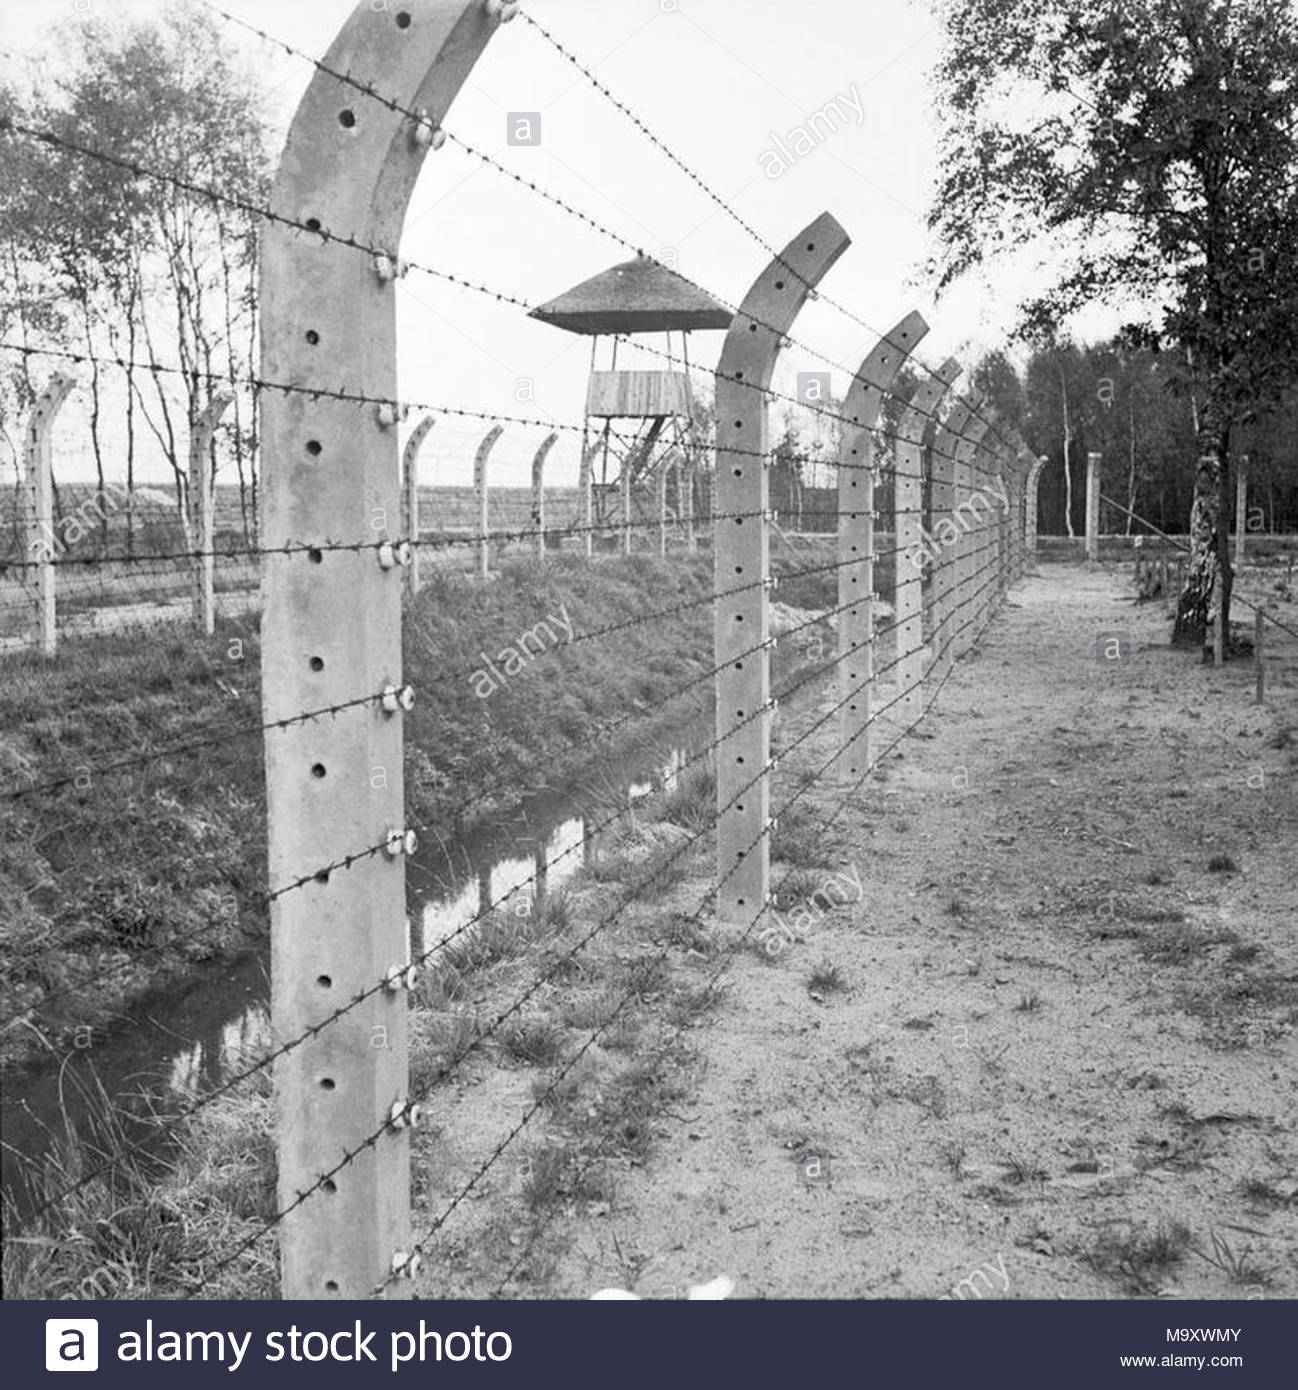 barbed wire fence concentration camp. Nazi Persecution Vught Concentration Camp: The Electrically Charged Barbed Wire Fence Around Camp Near Hertogenbosch In Holland. R